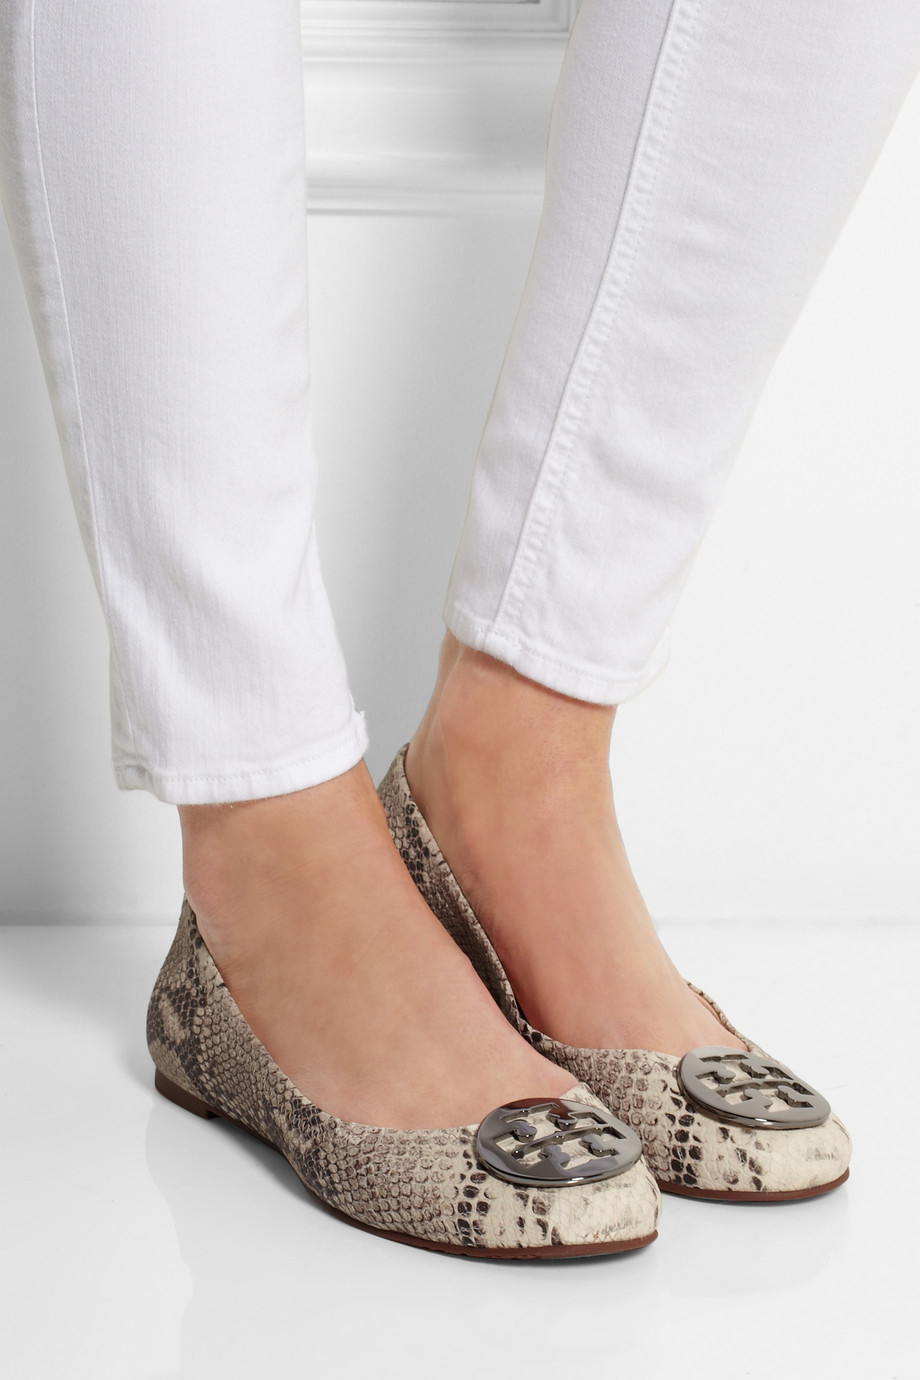 43018595b0a2 ... get lyst tory burch reva snake effect leather ballet flats in natural  7900b 6987d